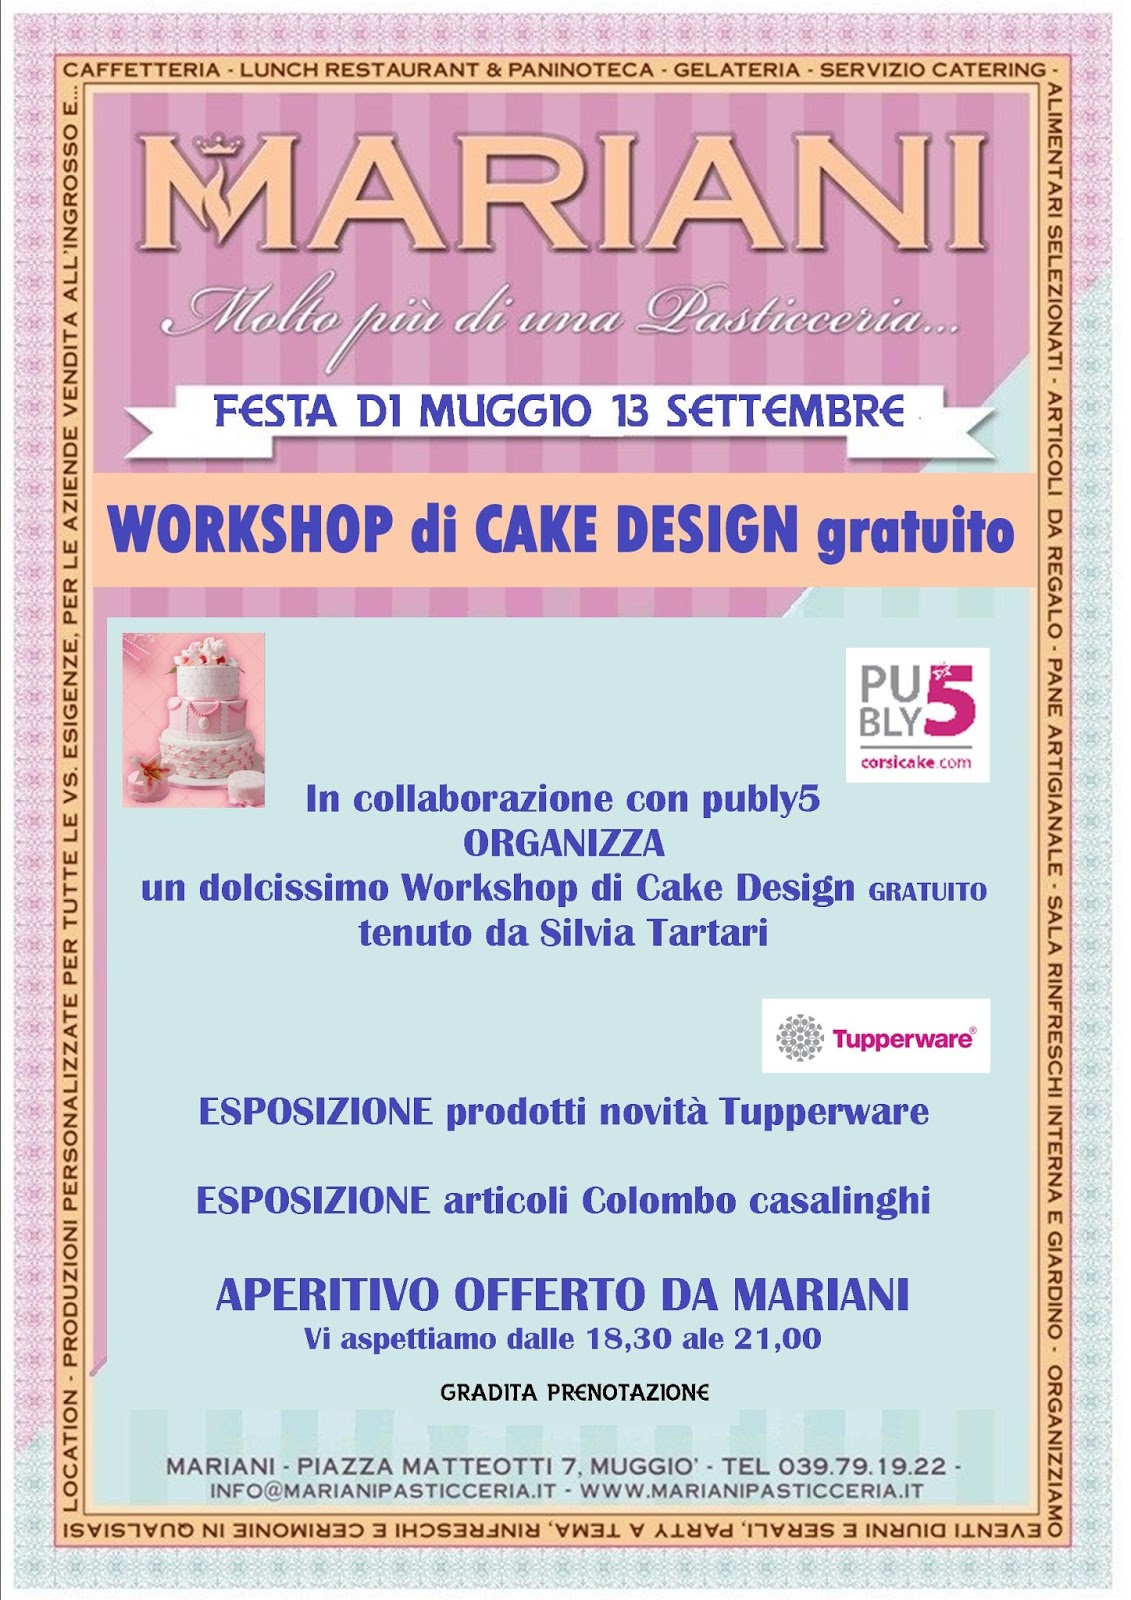 Workshp gratuito di cake design 13 settembre muggi mb for Disposizione seminterrato di design gratuito